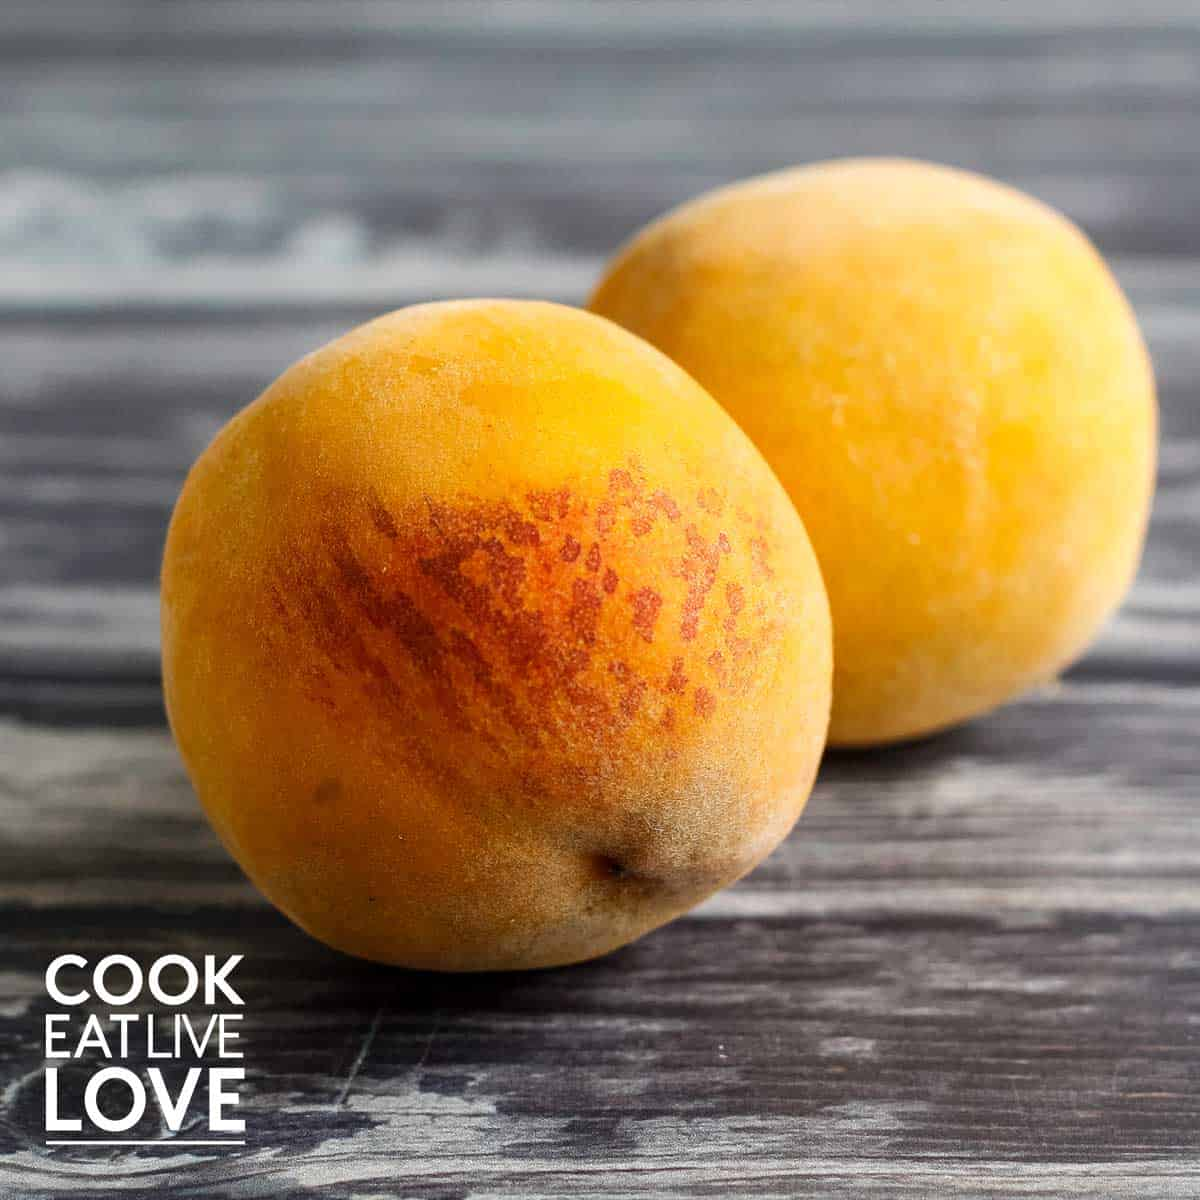 Whole peaches on gray wooden background.